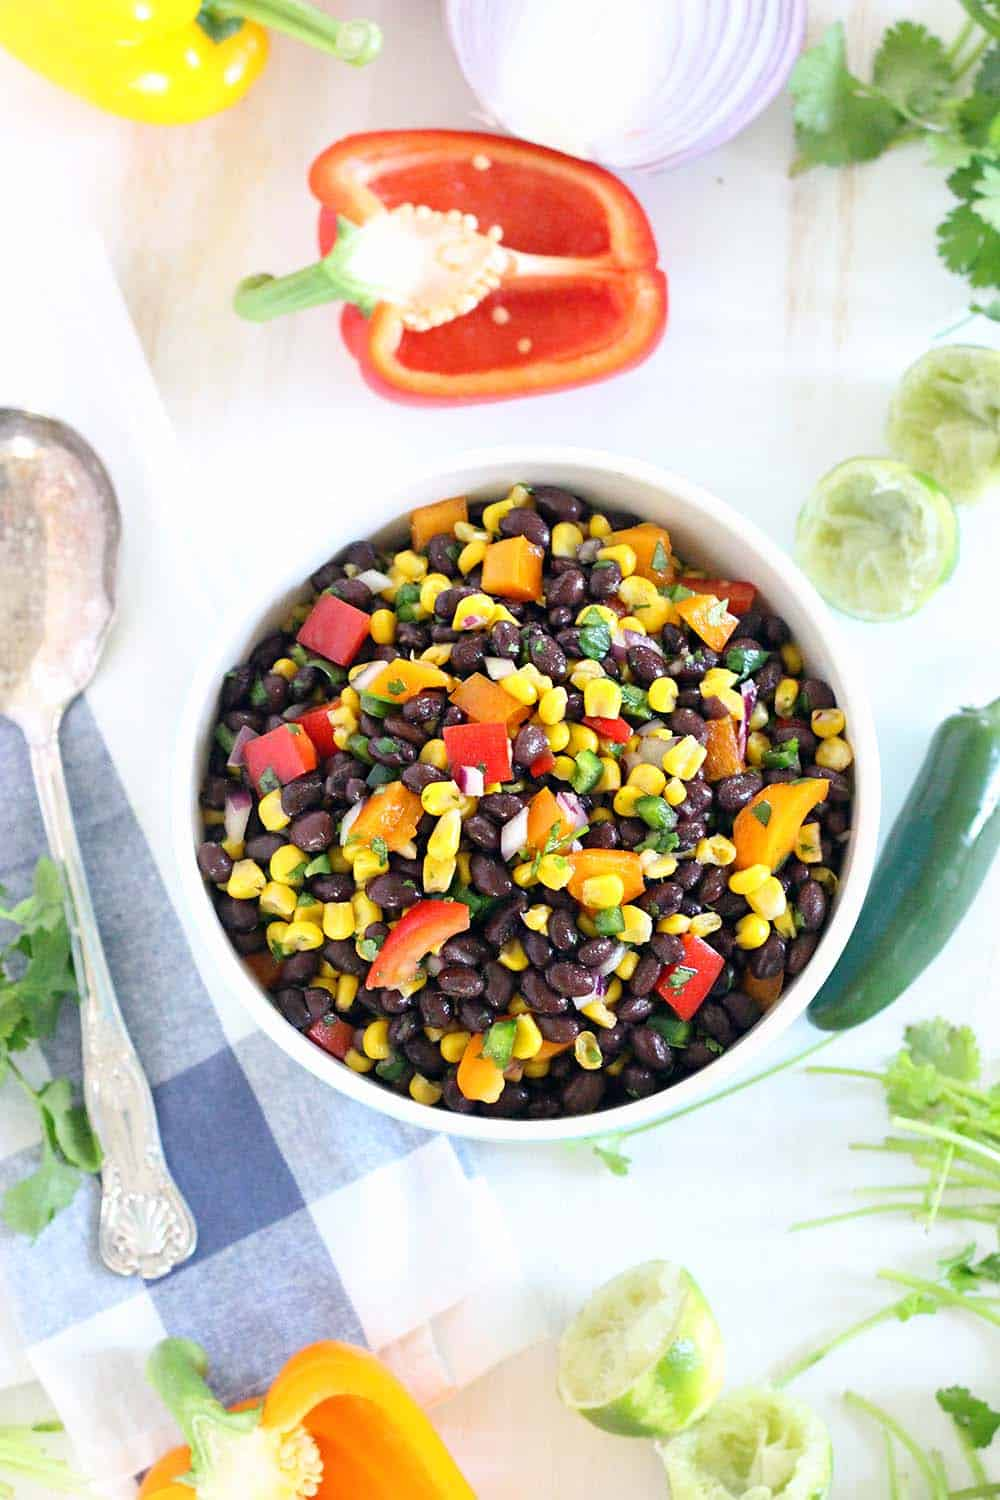 Bird's eye view of bowl of black bean and corn salad on a white surface with produce scattered around and a silver spoon next to the bowl.